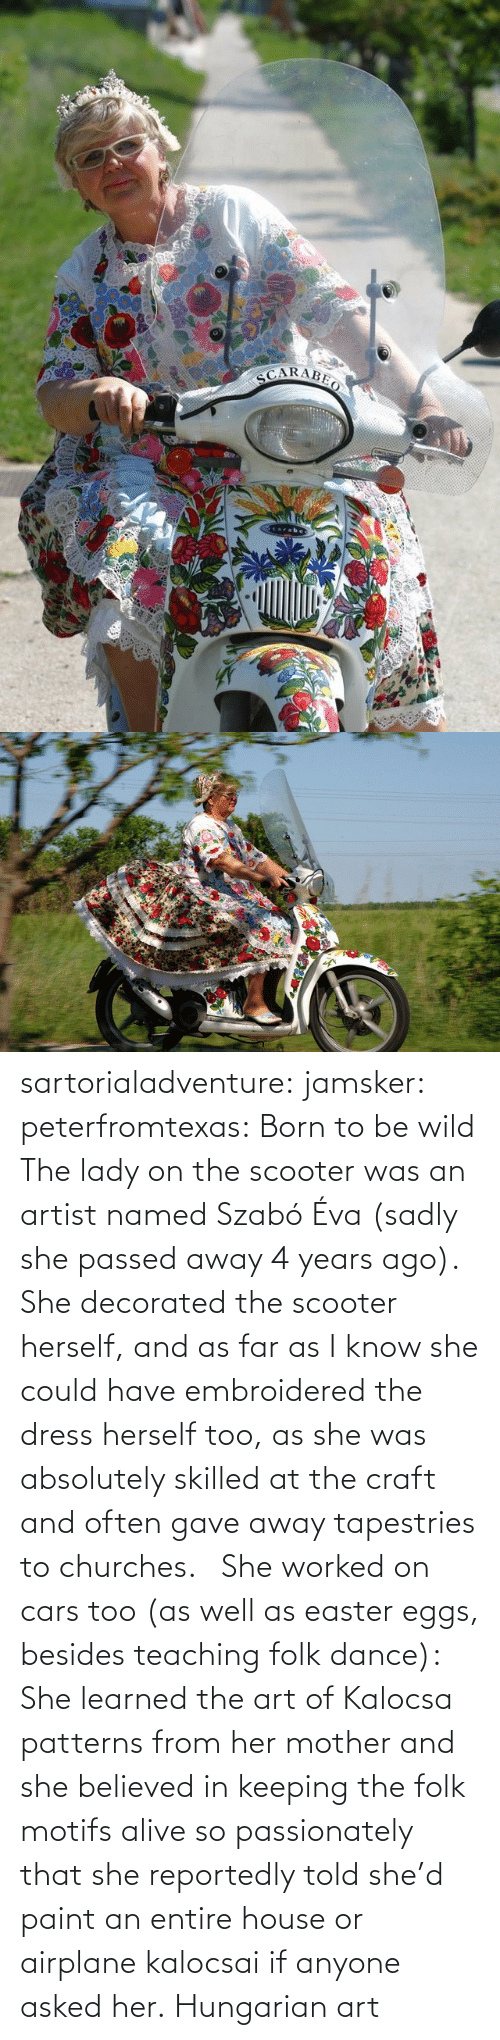 Teaching: sartorialadventure: jamsker:  peterfromtexas: Born to be wild The lady on the scooter was an artist named Szabó Éva (sadly she passed away 4 years ago). She decorated the scooter herself, and as far as I know she could have embroidered the dress herself too, as she was absolutely skilled at the craft and often gave away tapestries to churches.   She worked on cars too (as well as easter eggs, besides teaching folk dance): She learned the art of Kalocsa patterns from her mother and she believed in keeping the folk motifs alive so passionately that she reportedly told she'd paint an entire house or airplane kalocsai if anyone asked her.  Hungarian art